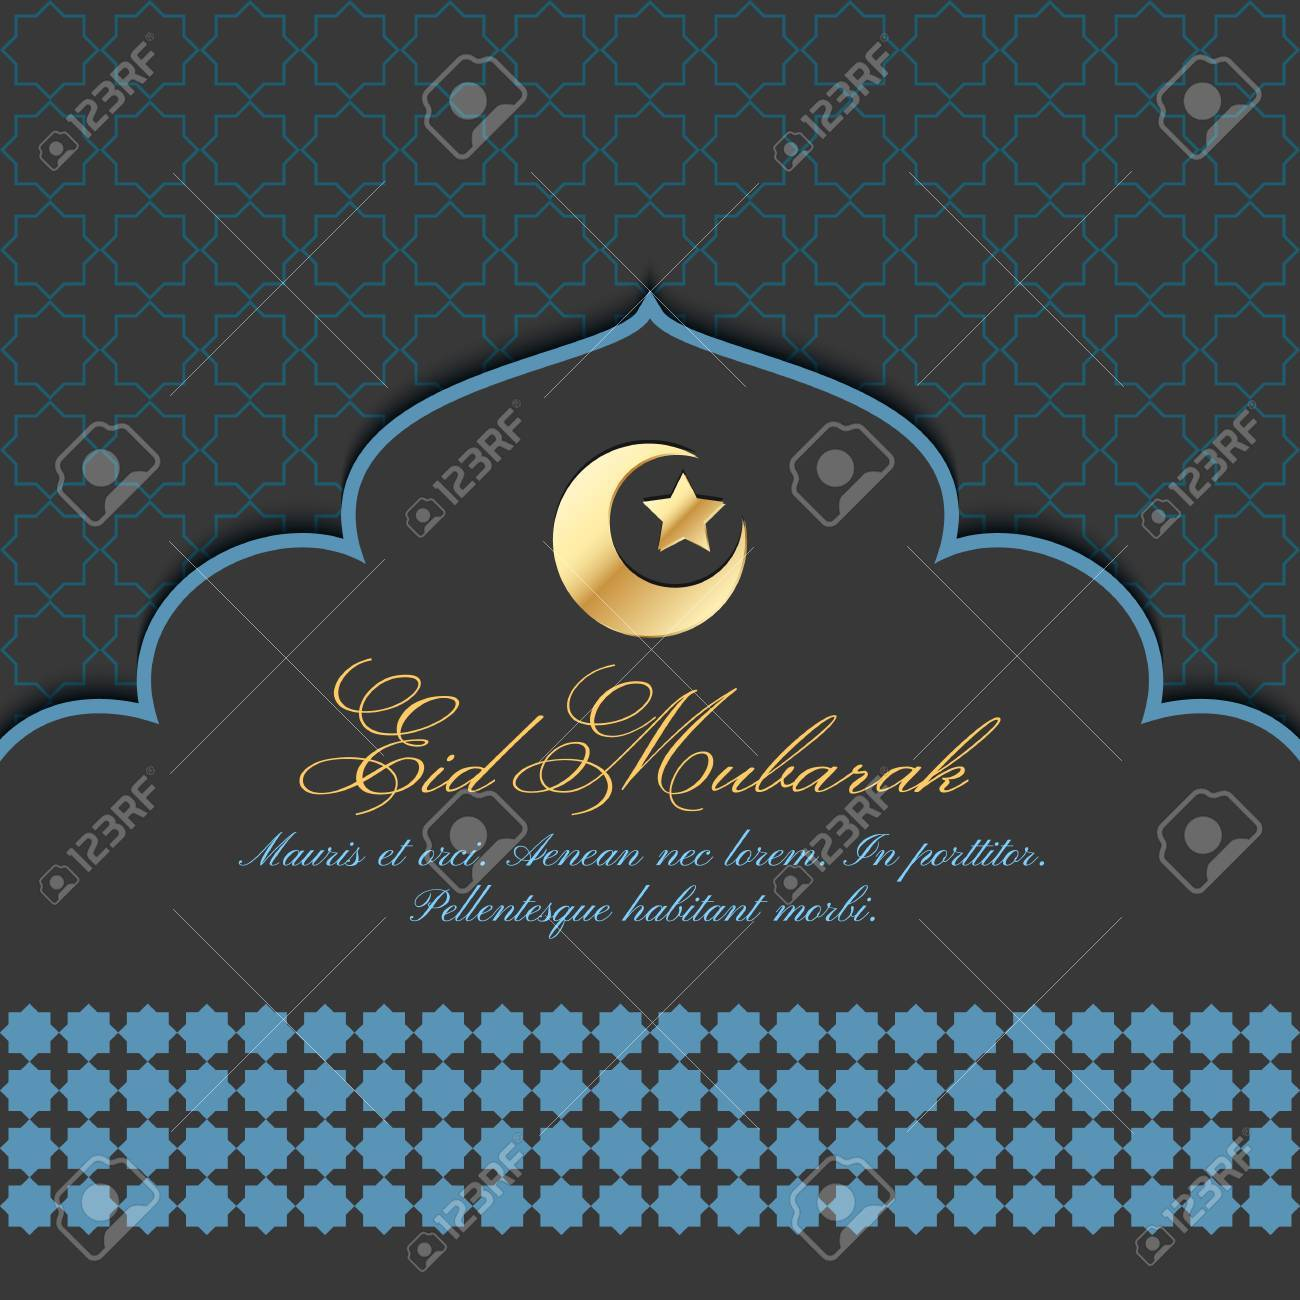 Eid mubarak greeting card with traditional pattern and crescent eid mubarak greeting card with traditional pattern and crescent star vector islamic background stock m4hsunfo